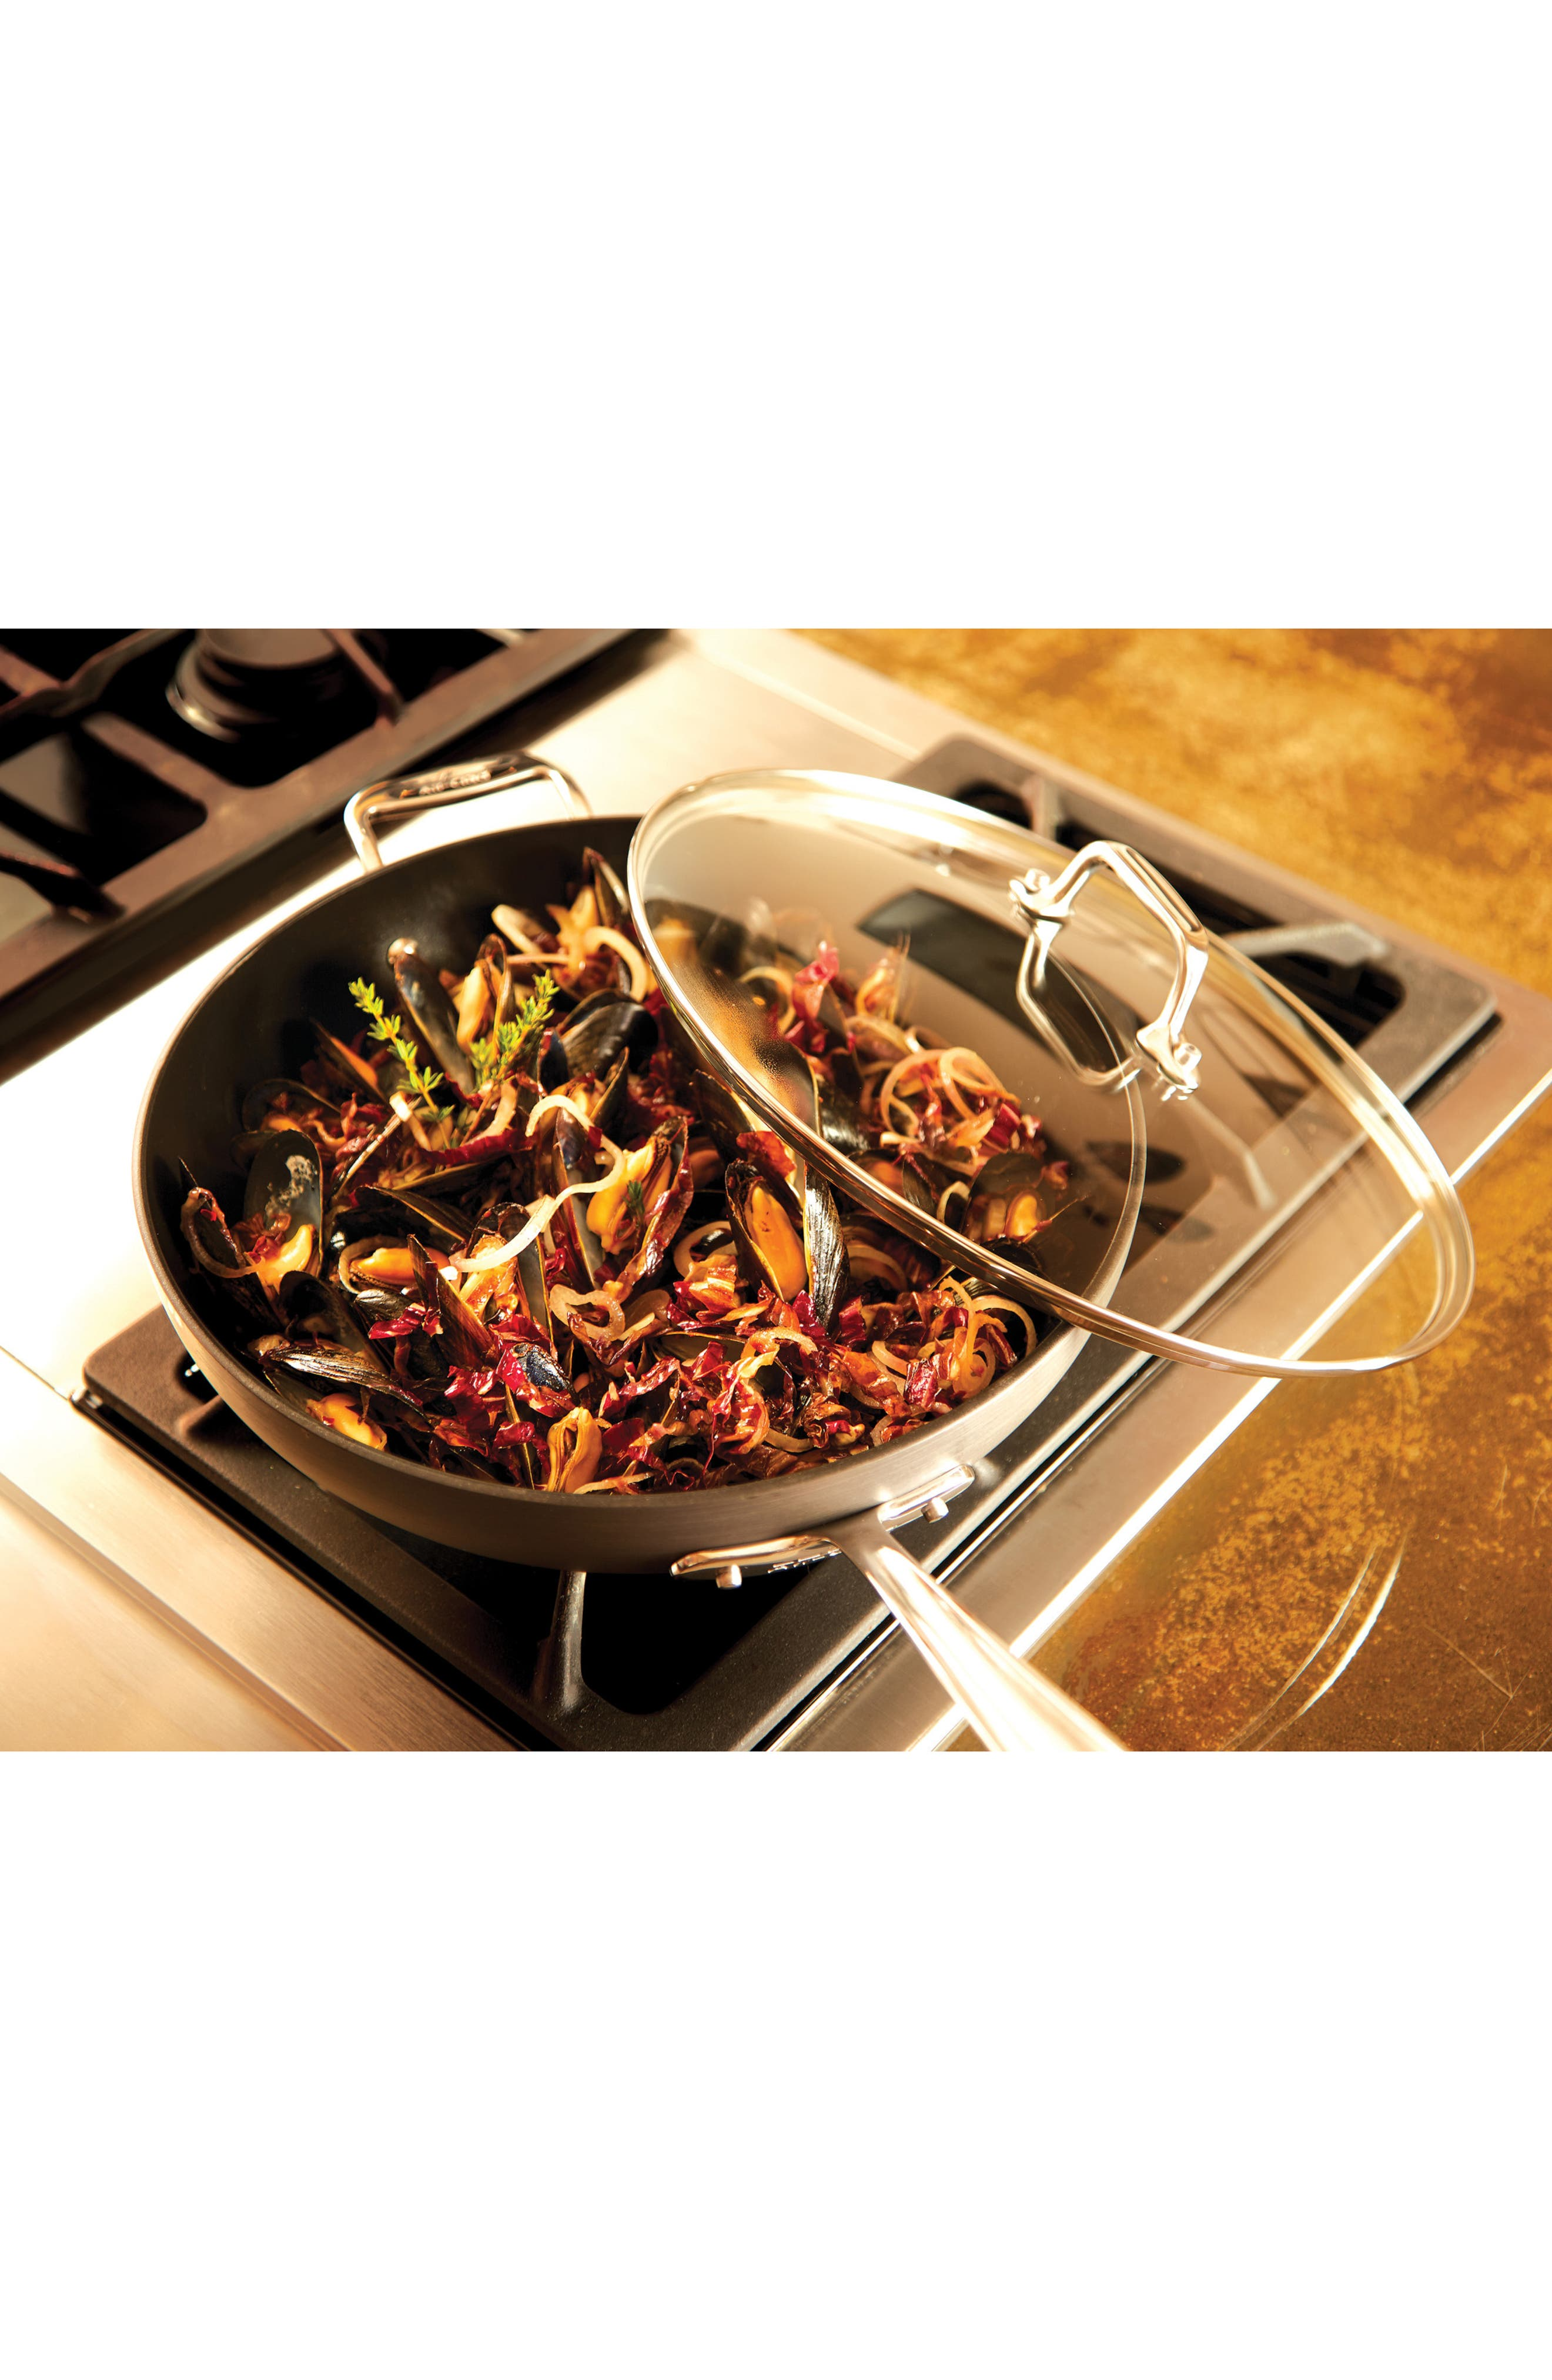 ALL-CLAD,                             12-Inch Hard Anodized Aluminum Nonstick Chef's Pan,                             Alternate thumbnail 2, color,                             BLACK